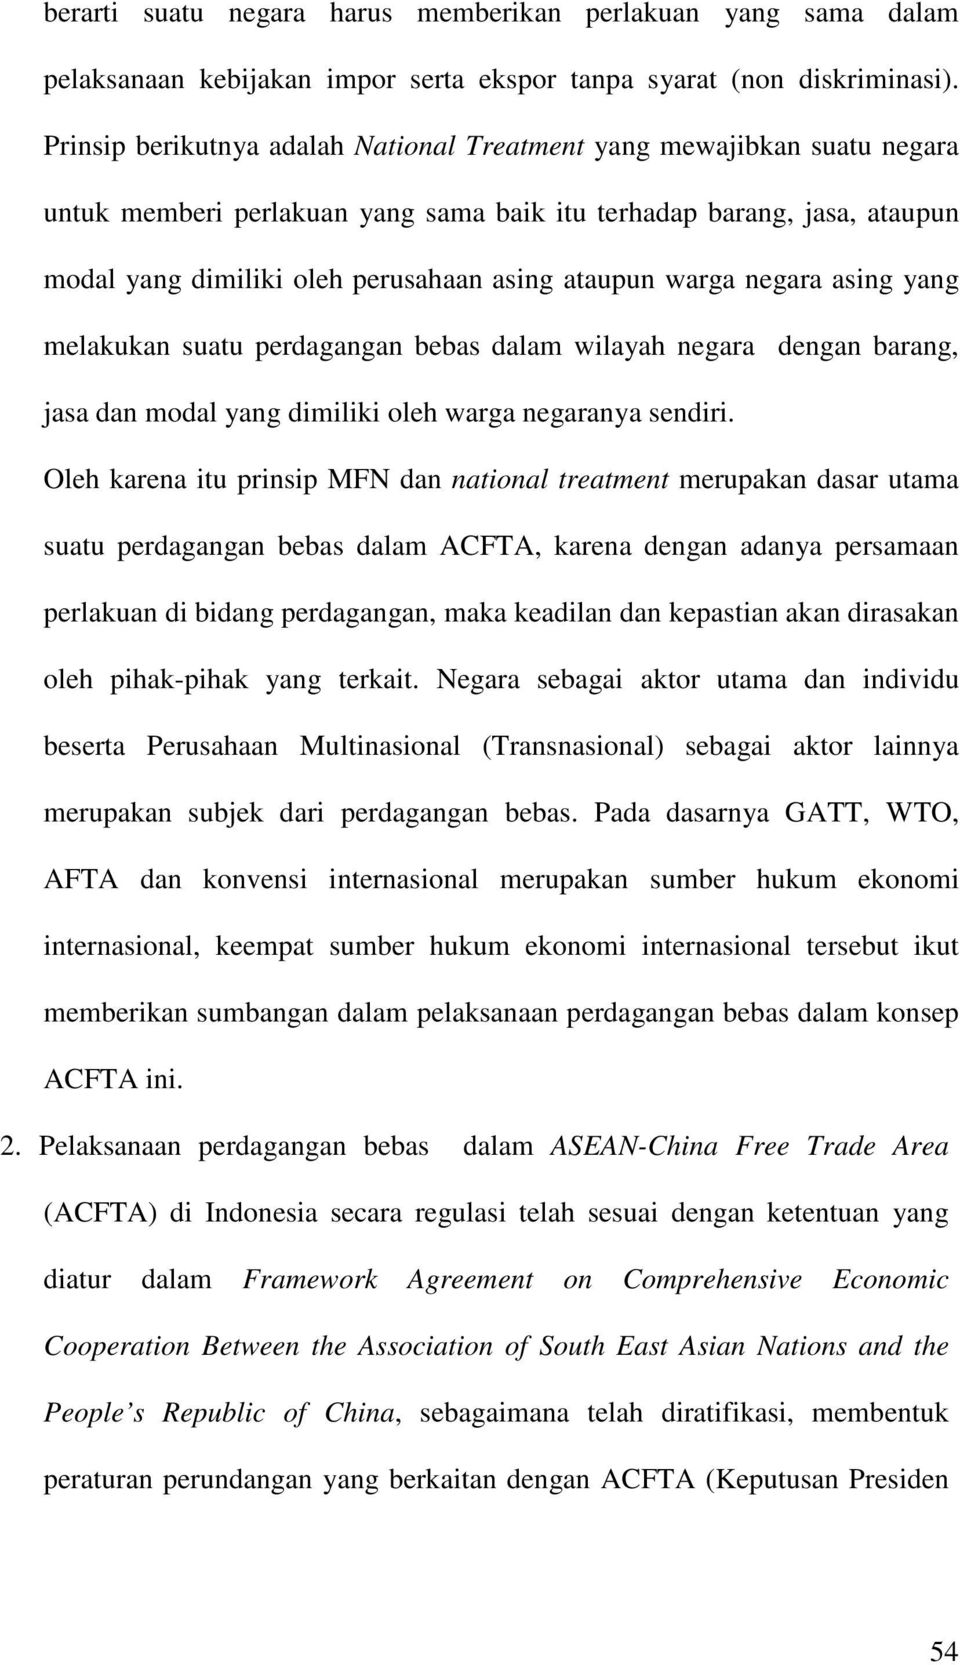 Pengaturan Perdagangan Bebas Dalam Asean China Free Trade Areal Acfta Dan Implementasinya Di Indonesia Pdf Download Gratis